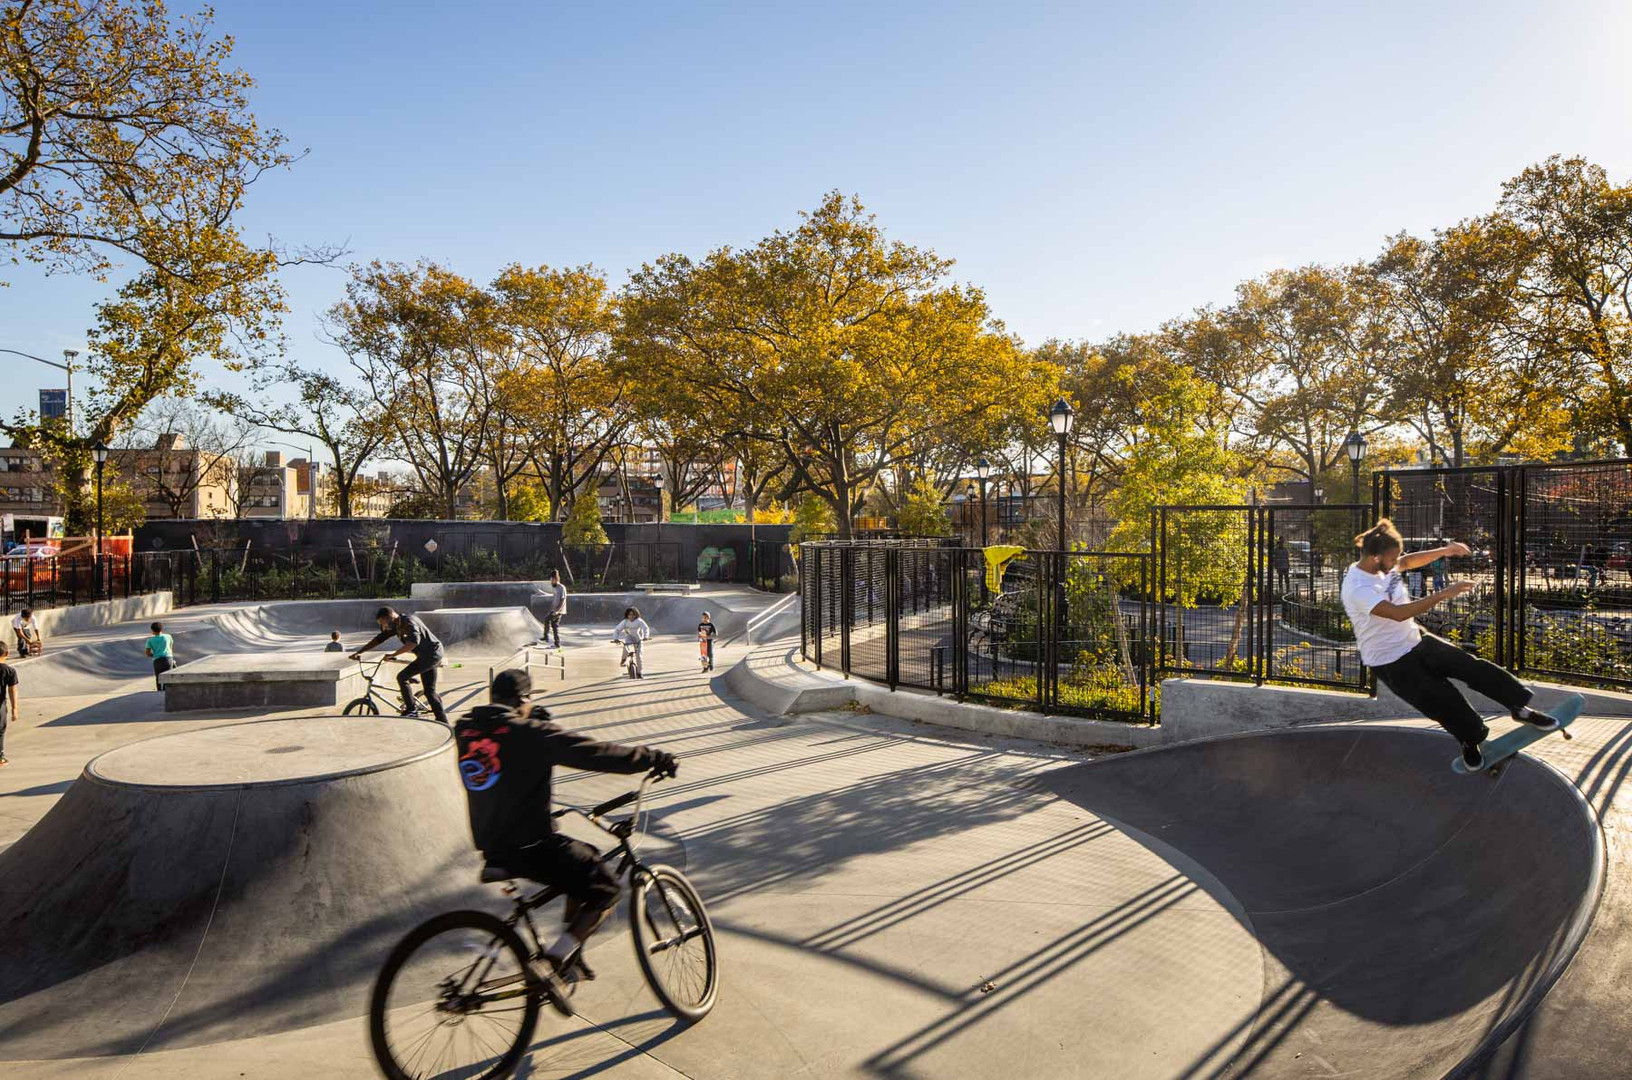 The sculptural geometries of the large, 6,000 square foot urban skate park complement the design vocabulary of the rest of the park. The skate park, which features quarter-pipes, transitions, ledges, and rails is enjoyed by users of all ages and abilities.